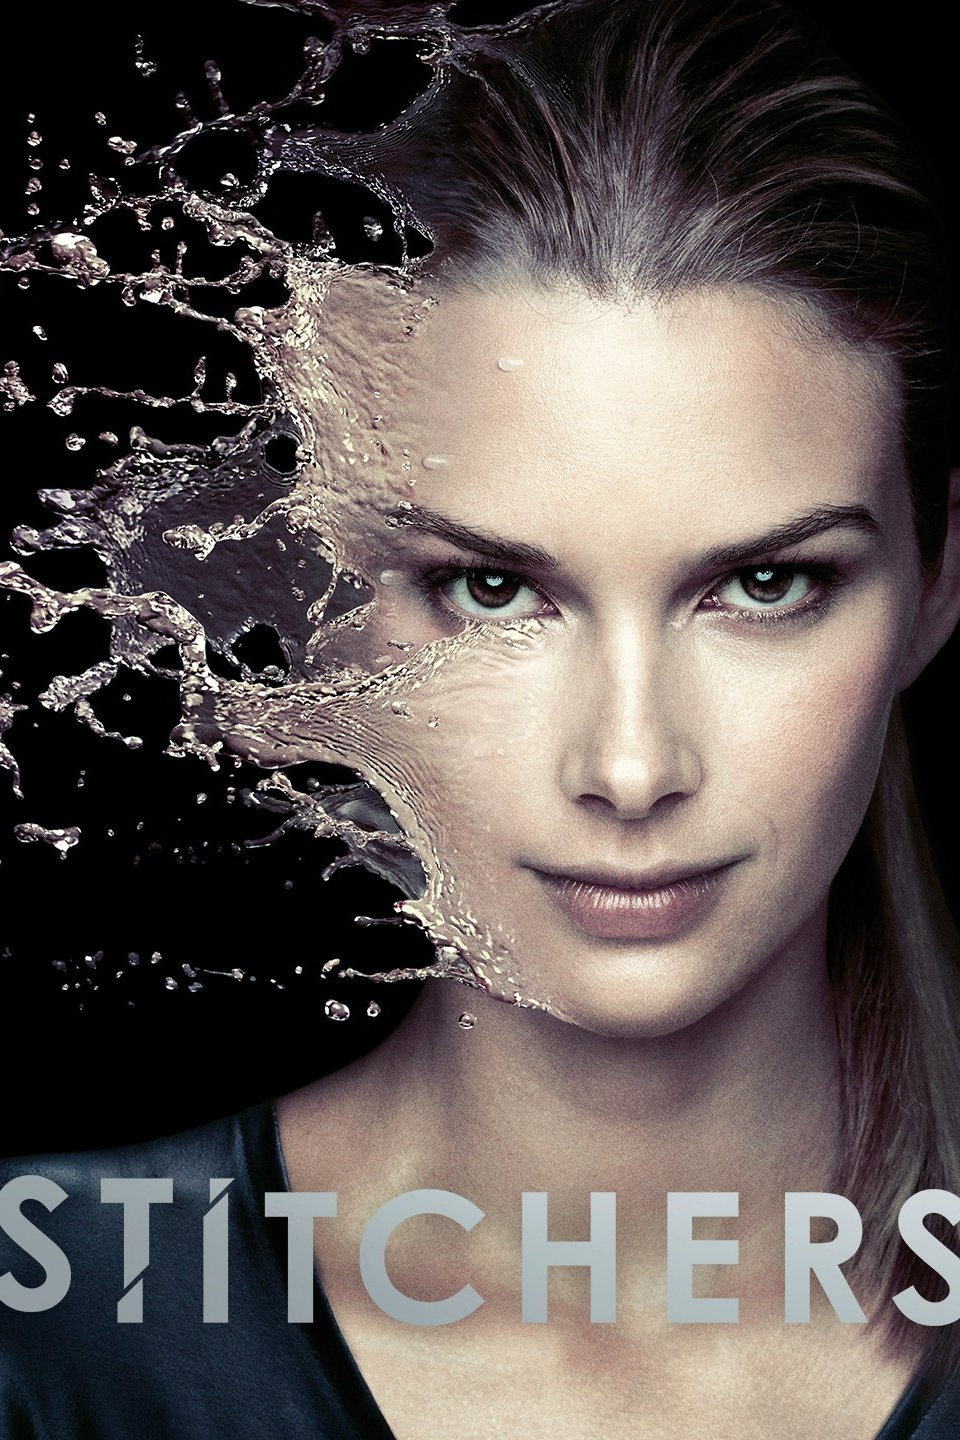 Stitchers Season 3 Episode 3 Download HDTV